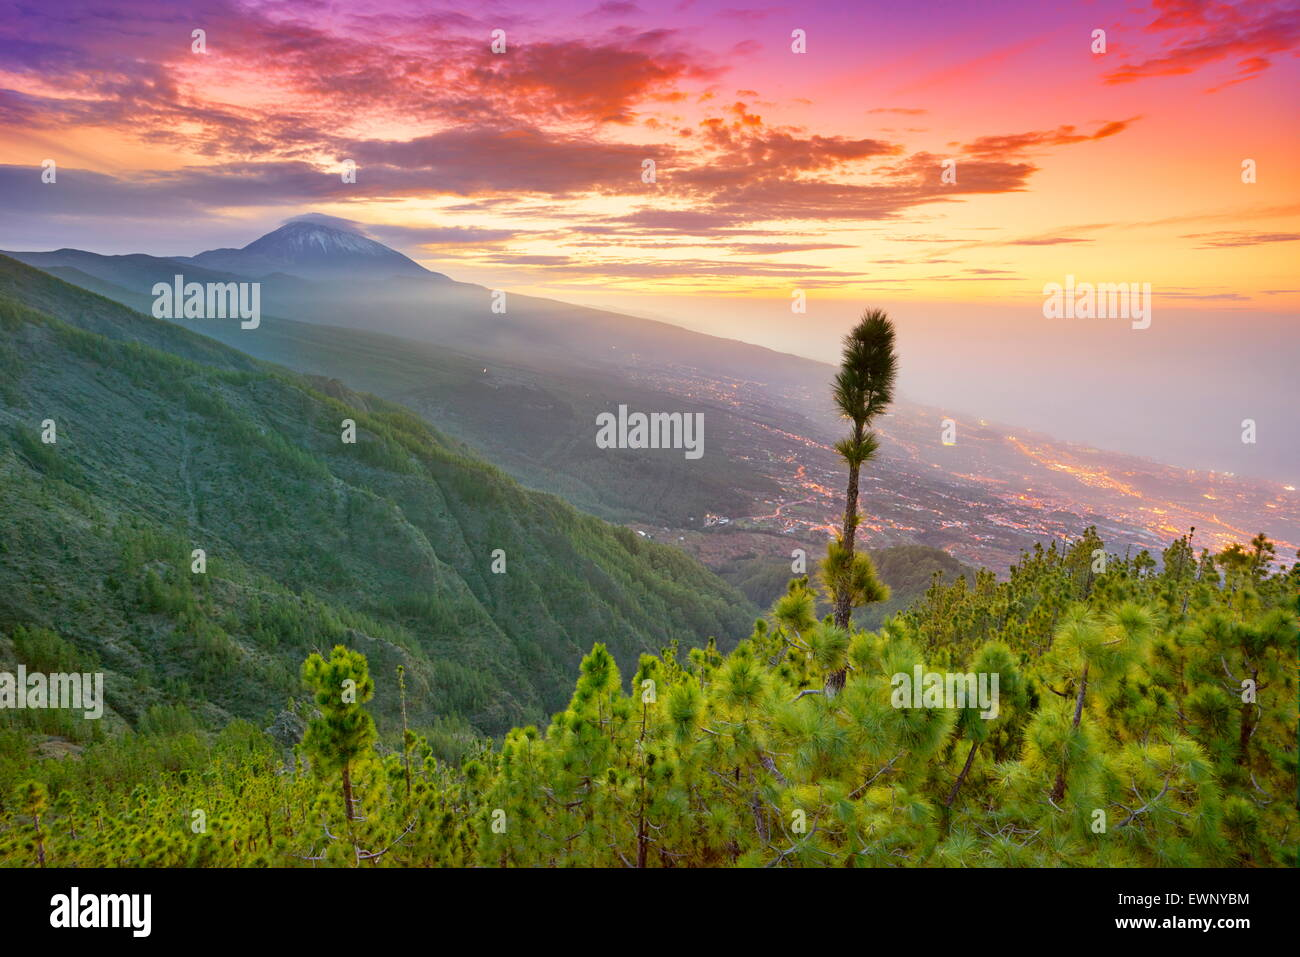 Tenerife Island landscape - Teide on sunset time, Canary Islands, Spain - Stock Image